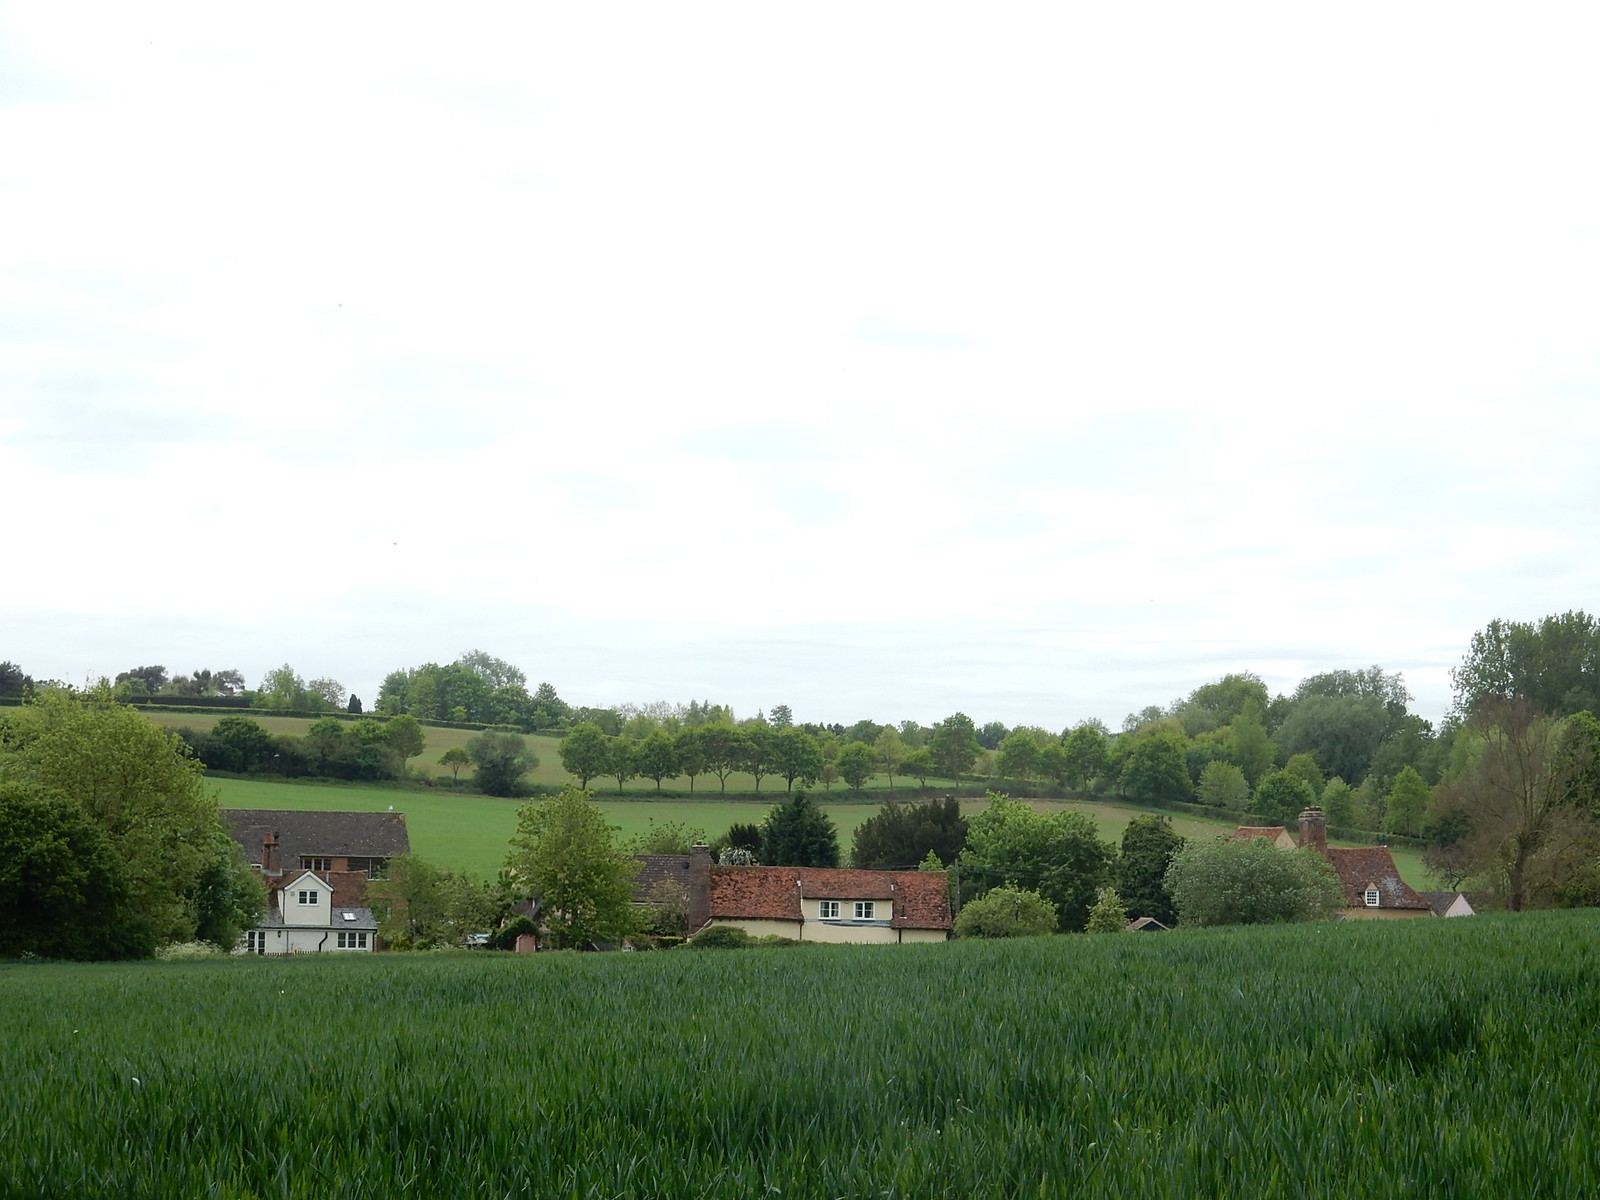 Settlement Bures to Sudbury